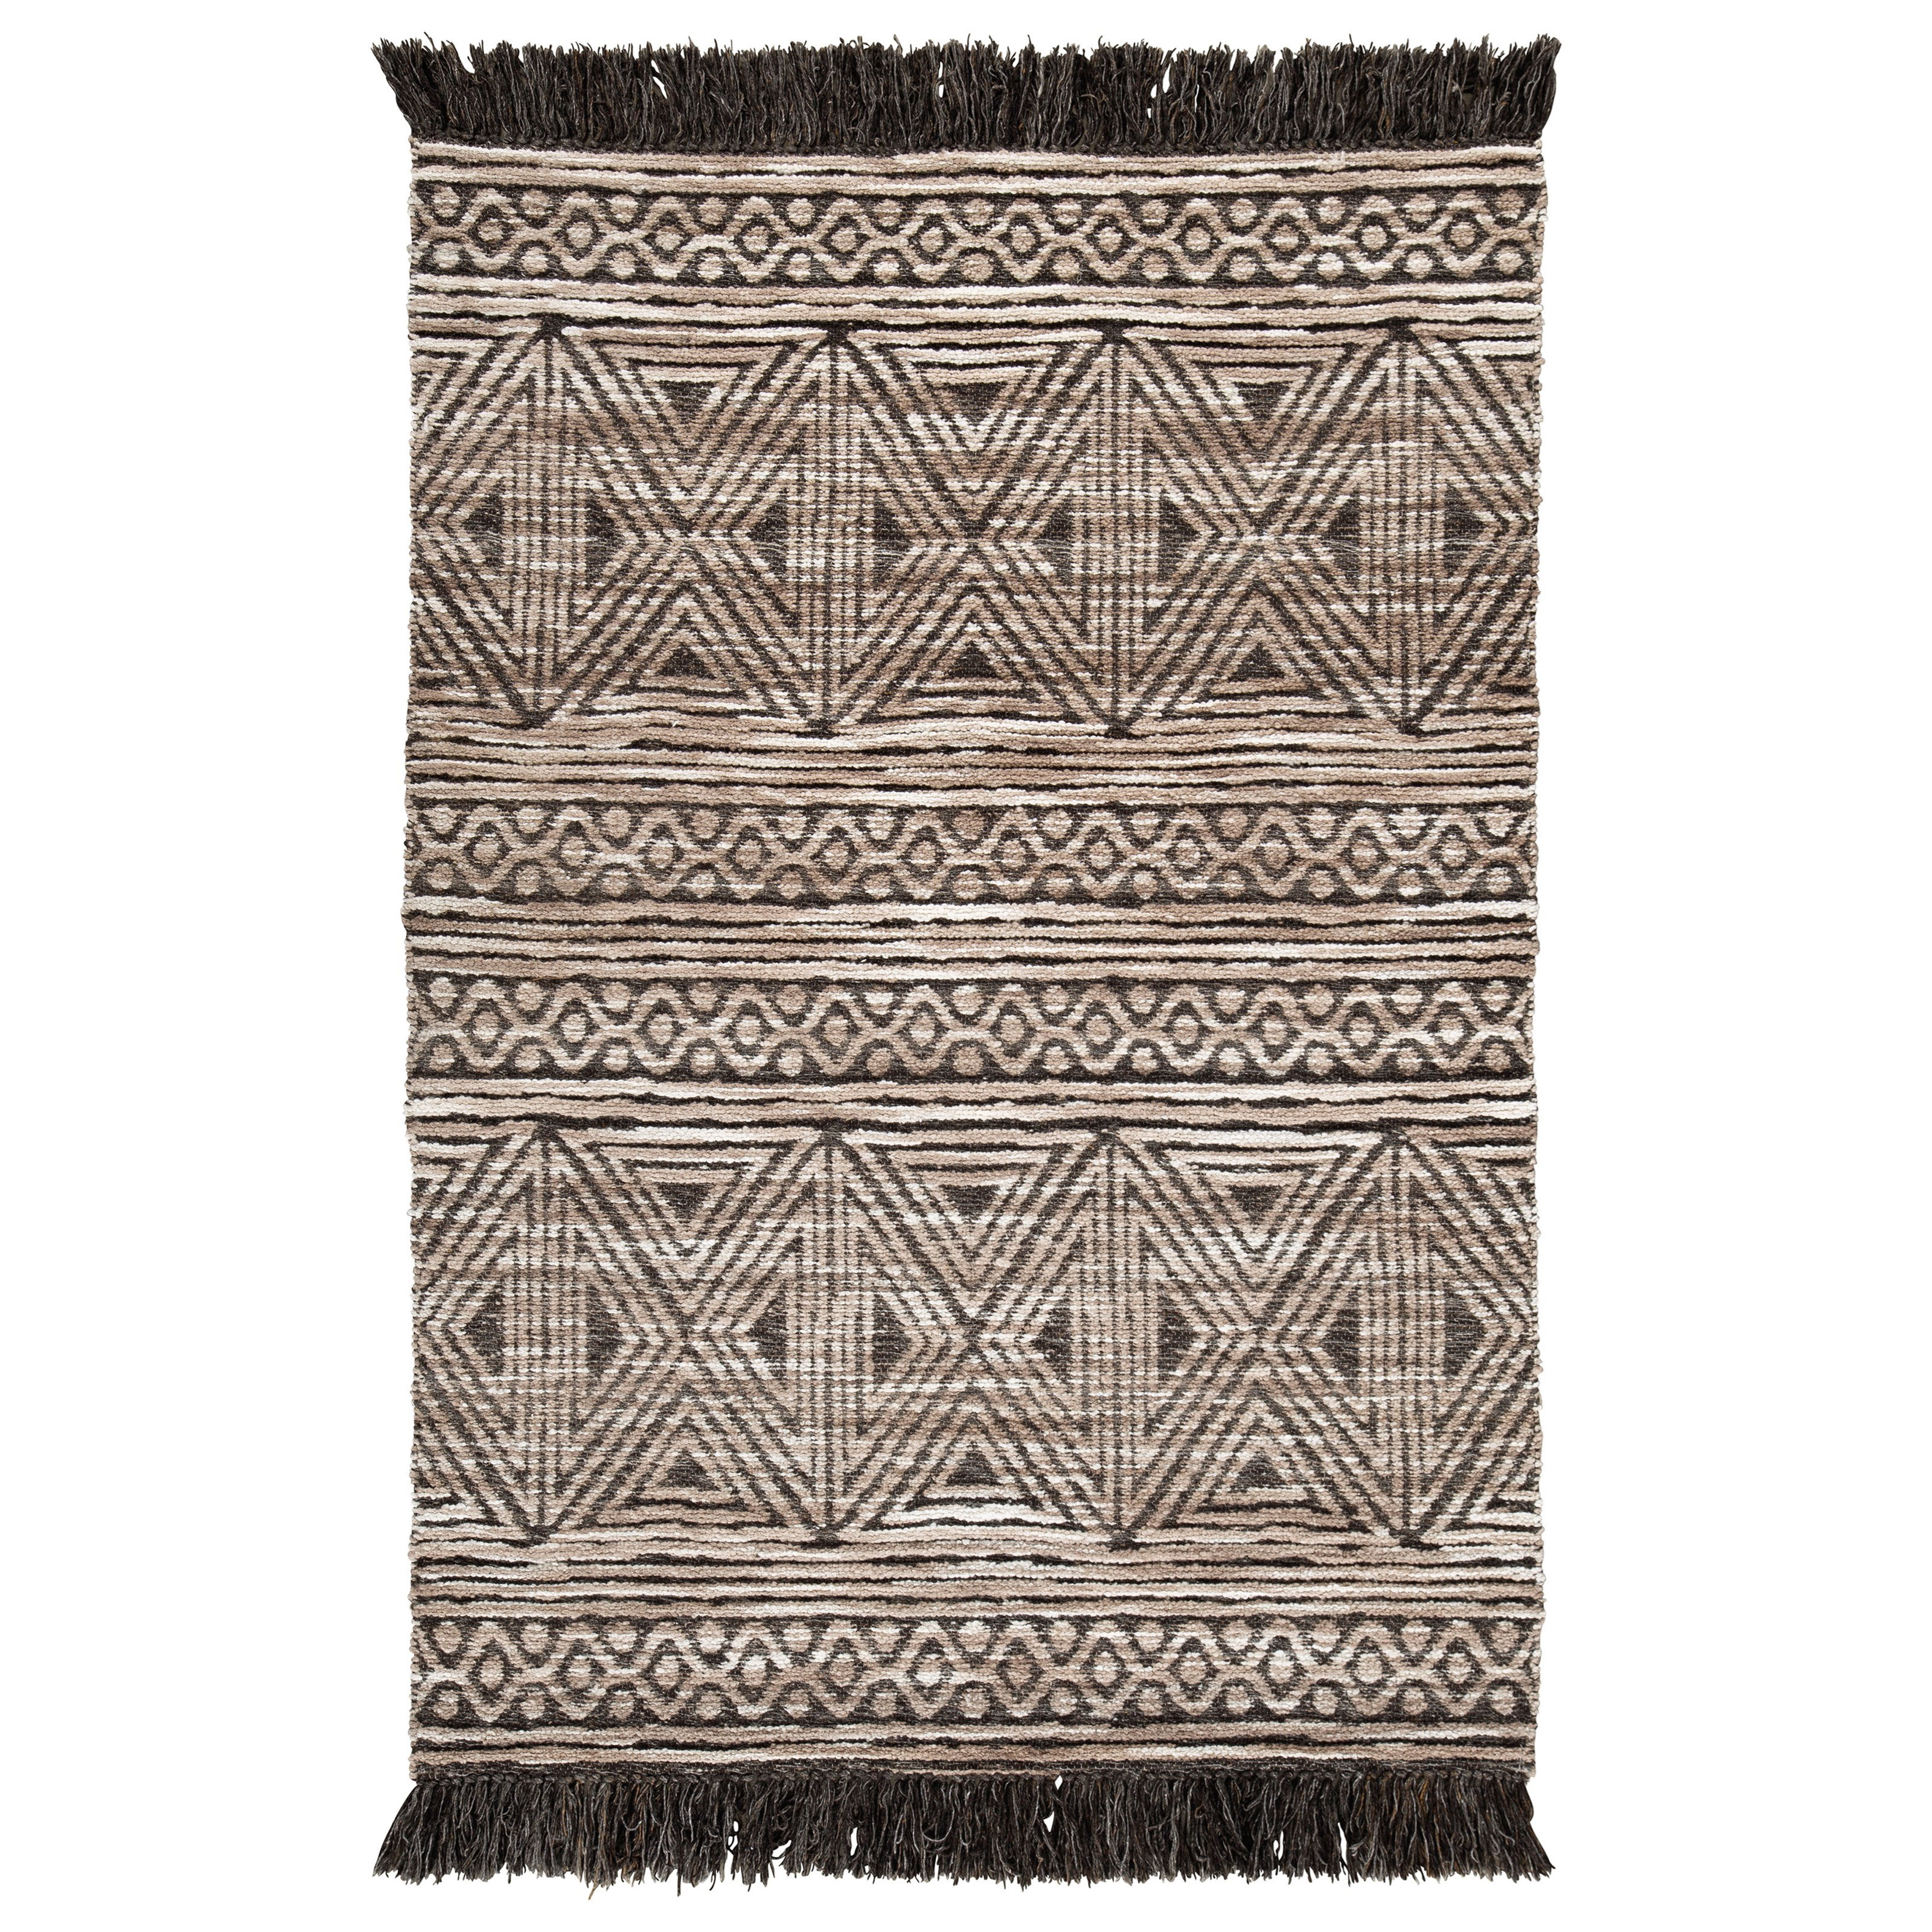 Casual Area Rugs Kylin Taupe/Black Medium Rug by Signature Design by Ashley at Northeast Factory Direct